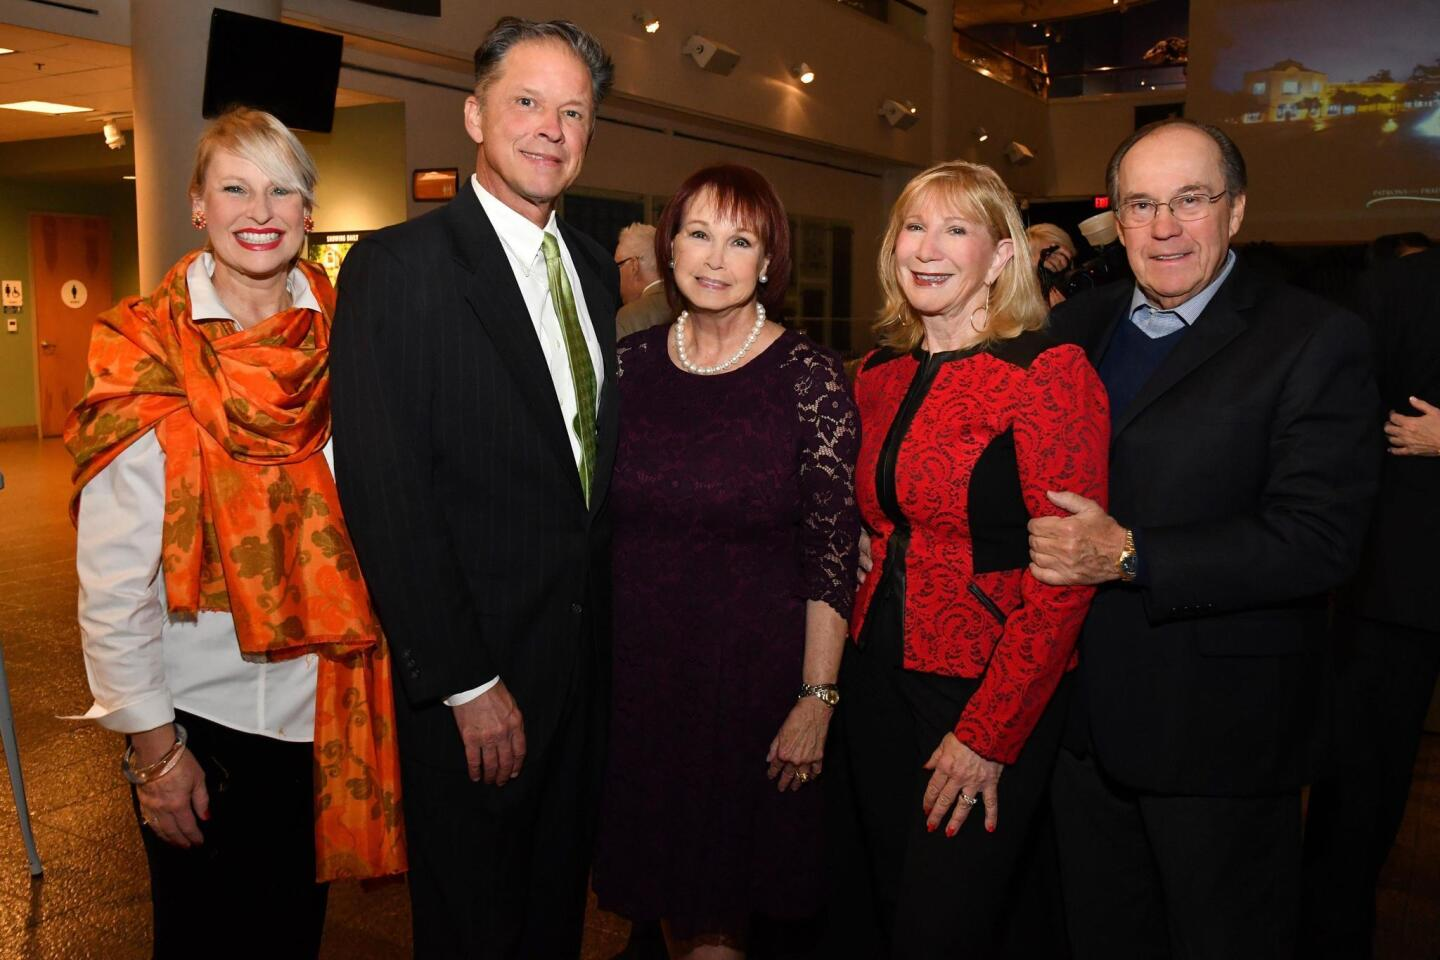 Merridee and Jon Book (she's 2018 PoP gala chair), Clarice Perkins (PoP 2018 president), Roxi and Hon. Fred Link (she's 2018 PoP gala chair)